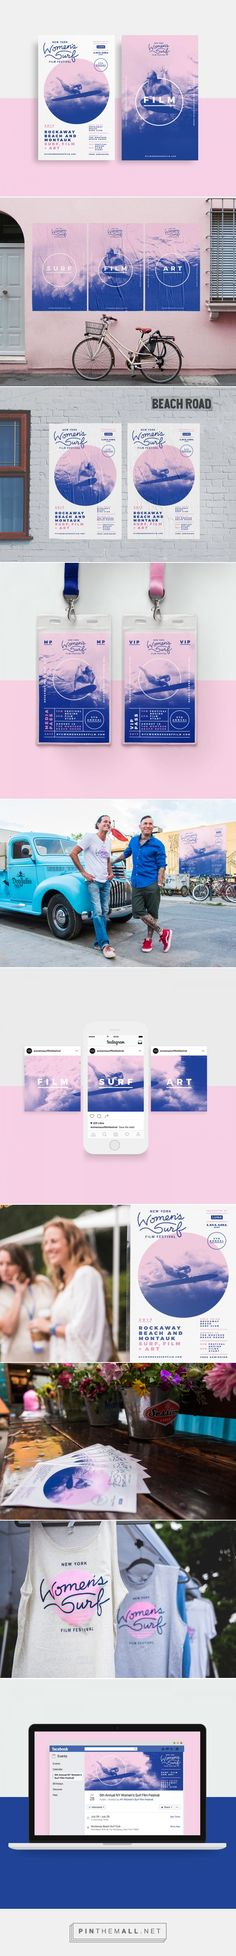 New York Women's Surf Film Festival Branding on Behance... - a grouped images picture - Pin Them All